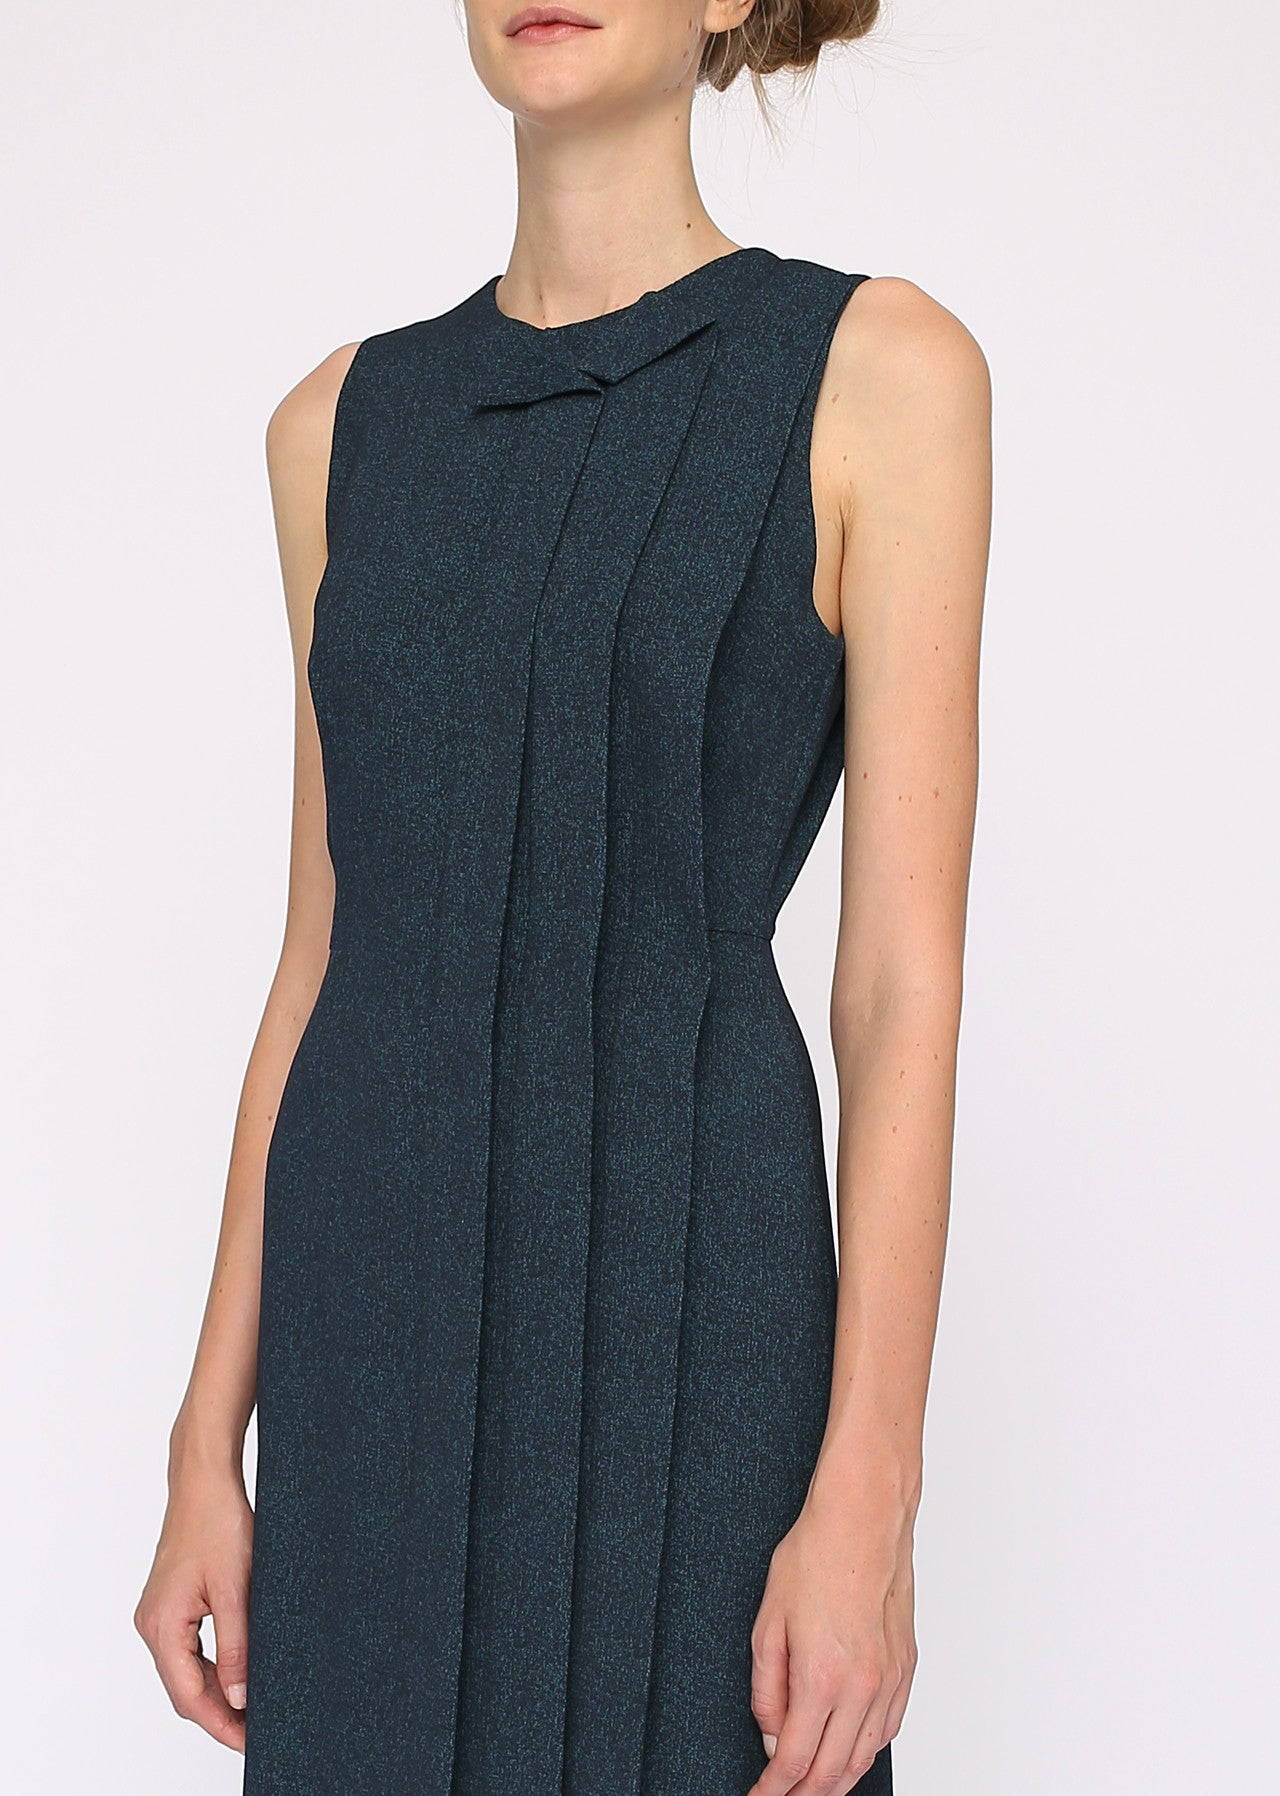 Pleated Blue Sleeveless Dress